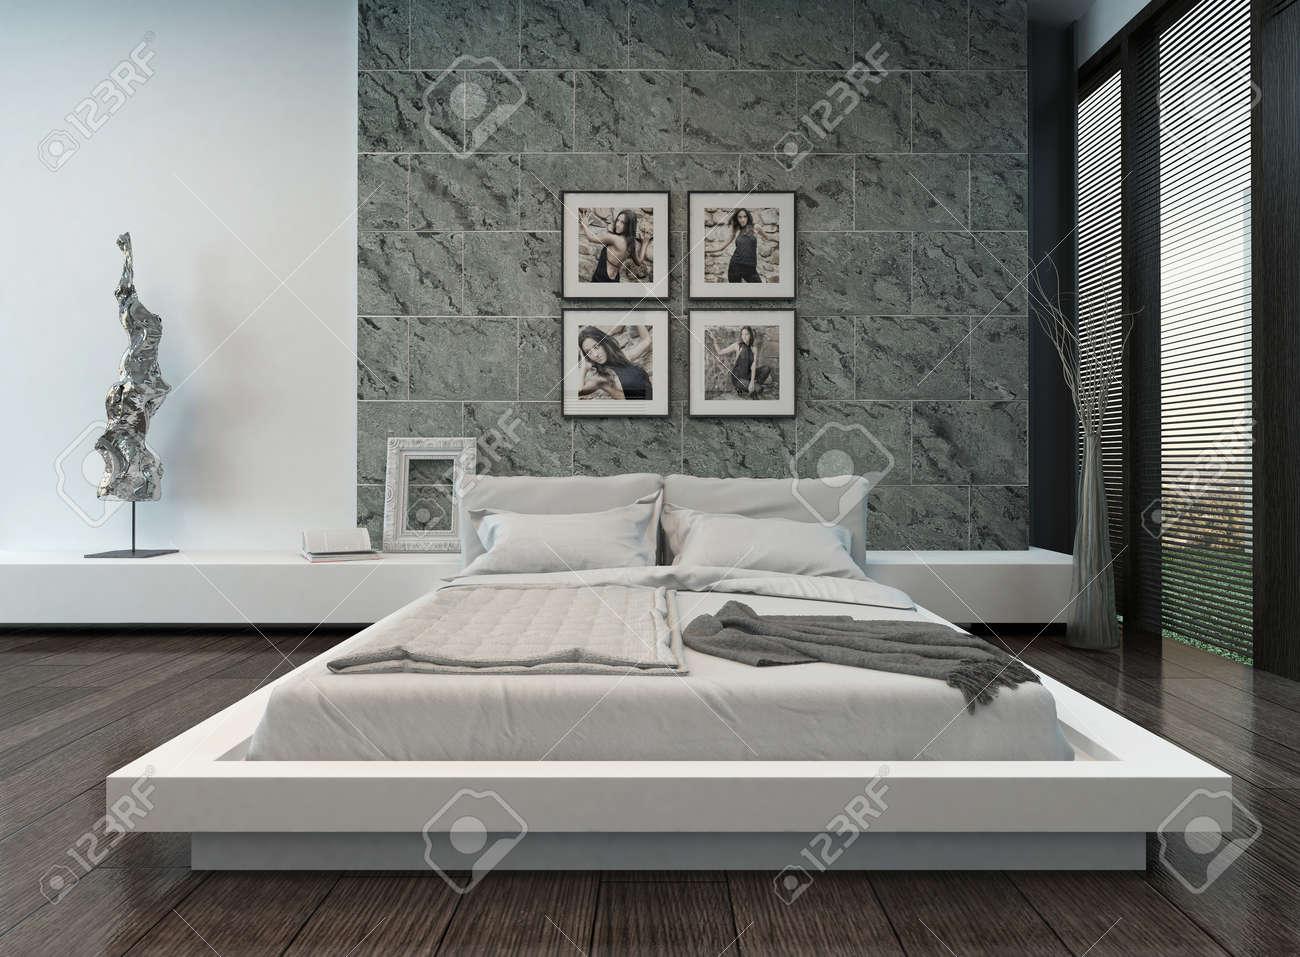 Picture Of Modern Bedroom Interior With Stone Wall Stock Photo ...